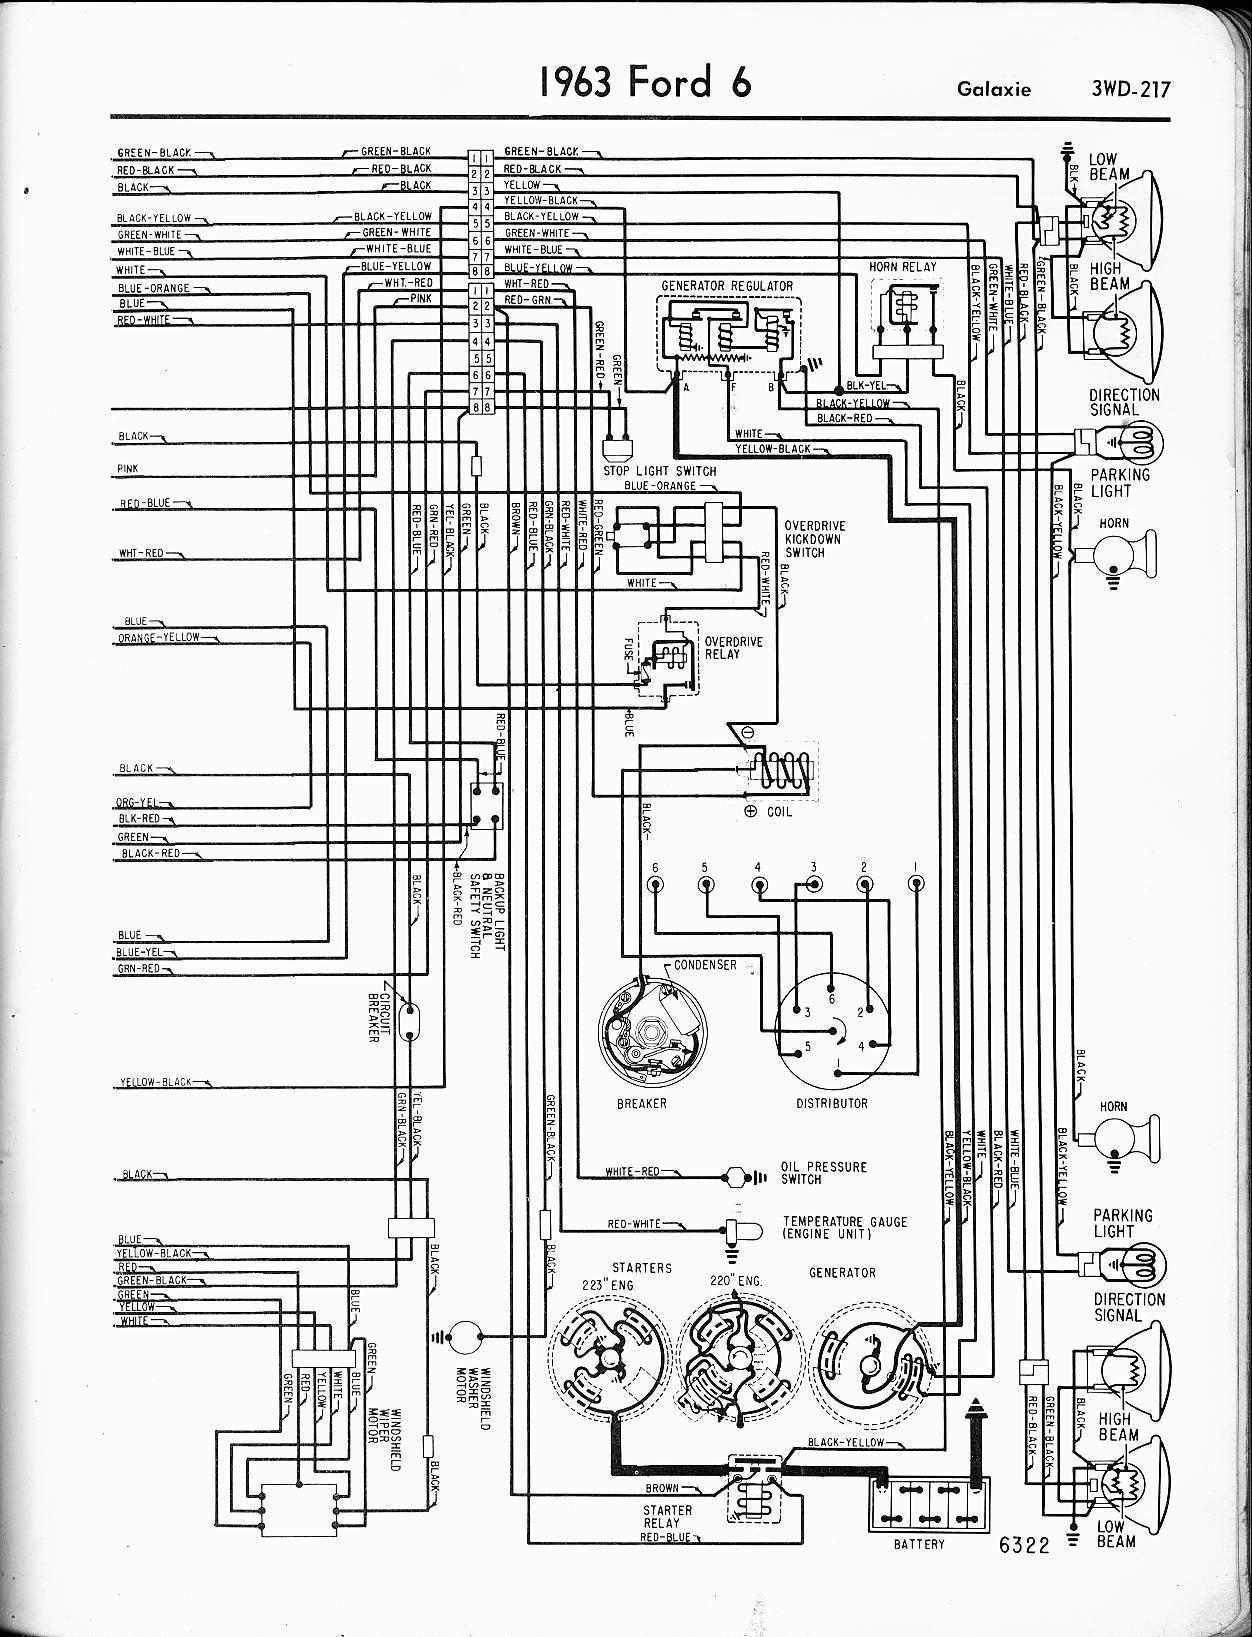 67 galaxie wiring diagram schematics wiring diagrams u2022 rh orwellvets co